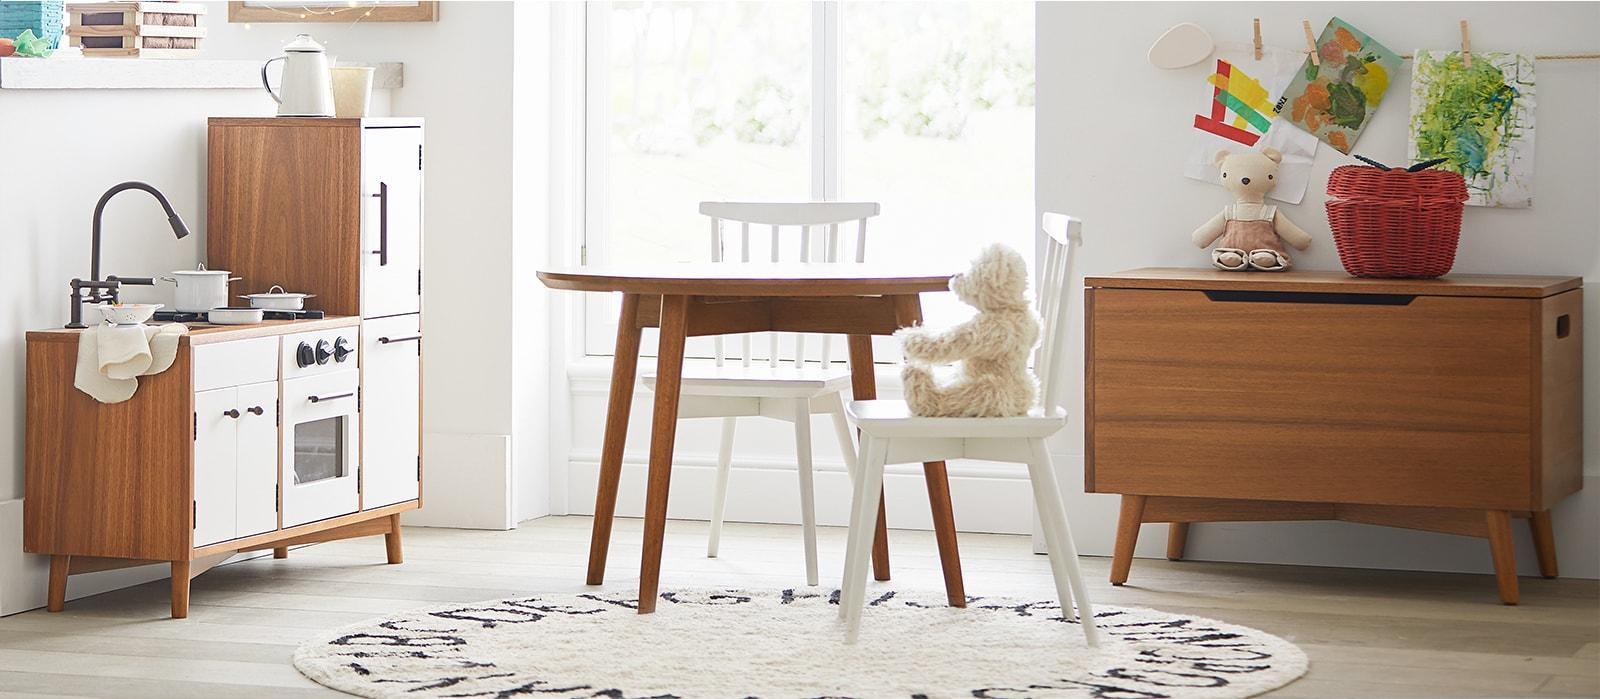 Shop Playroom Furniture & Toys for every age